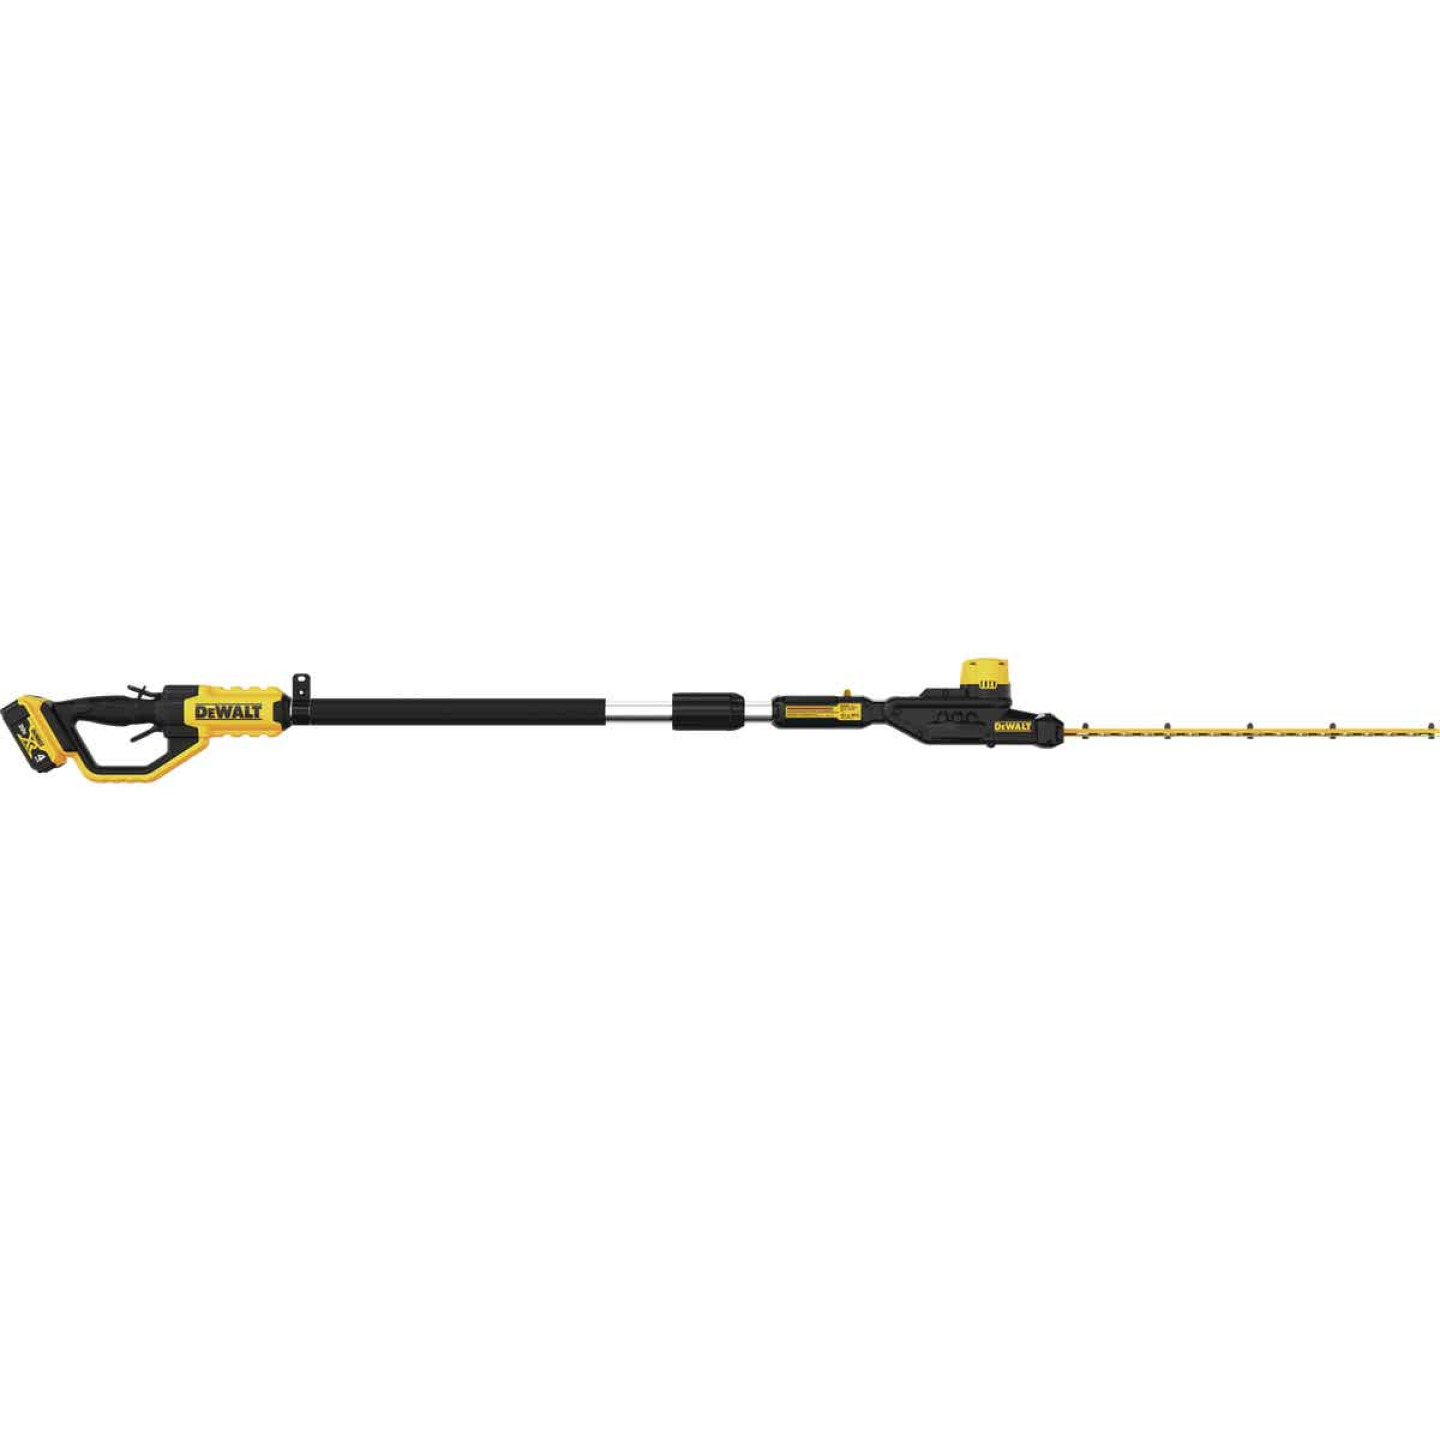 DeWalt 20V MAX 22 In. Cordless Pole Hedge Trimmer Kit Image 1